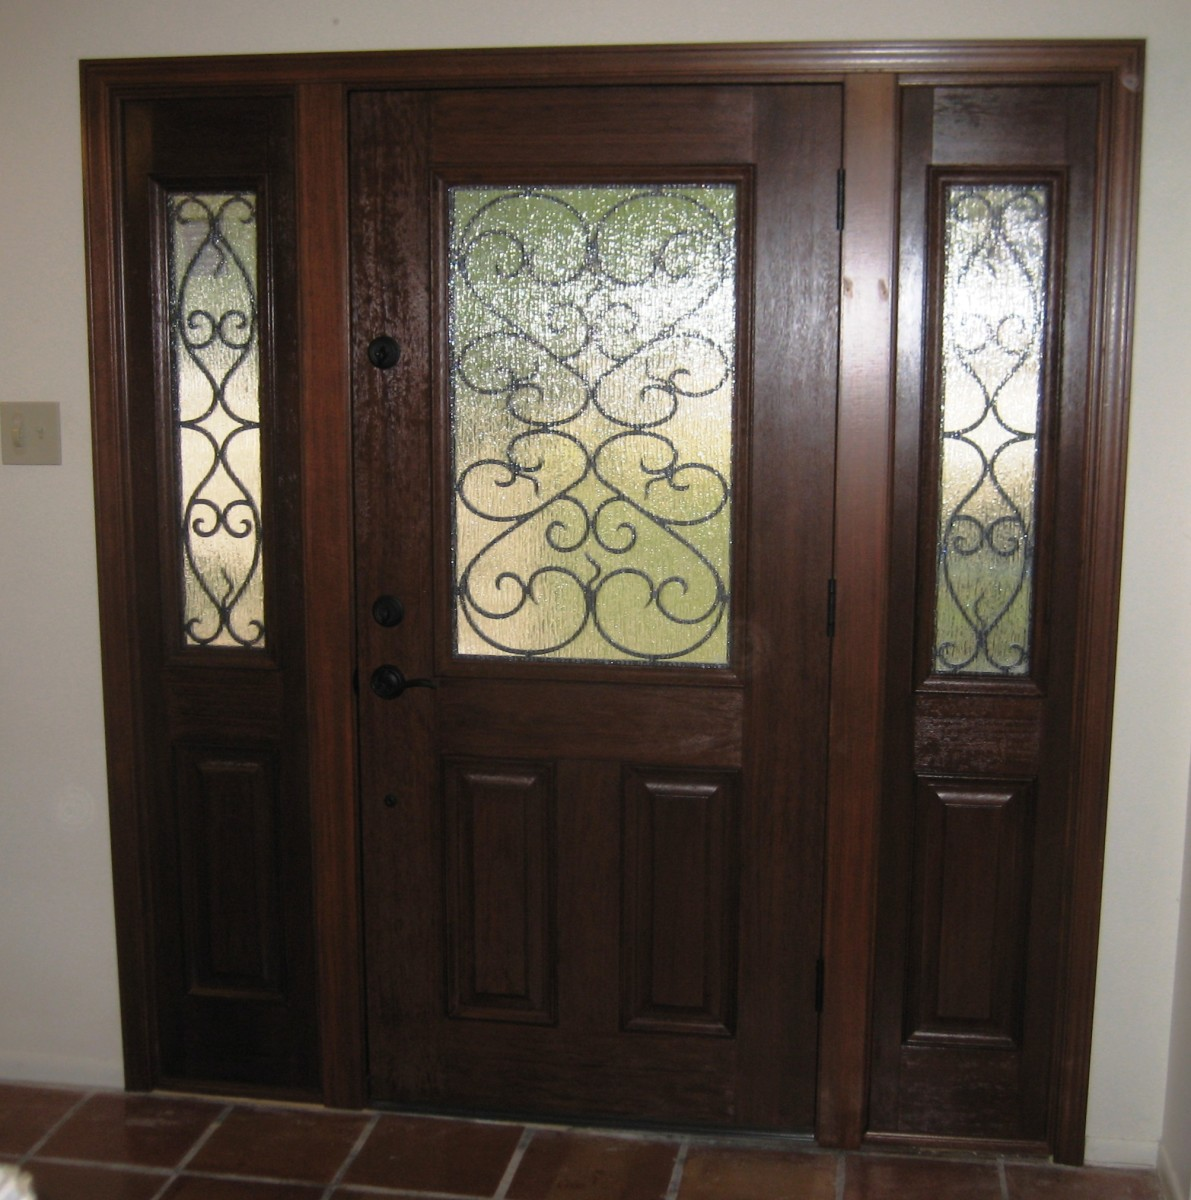 1200 #2C201A Fiberglass Entry Door Gallery – The Front Door Company save image Fiberglass Entry Doors With Sidelites 42671191